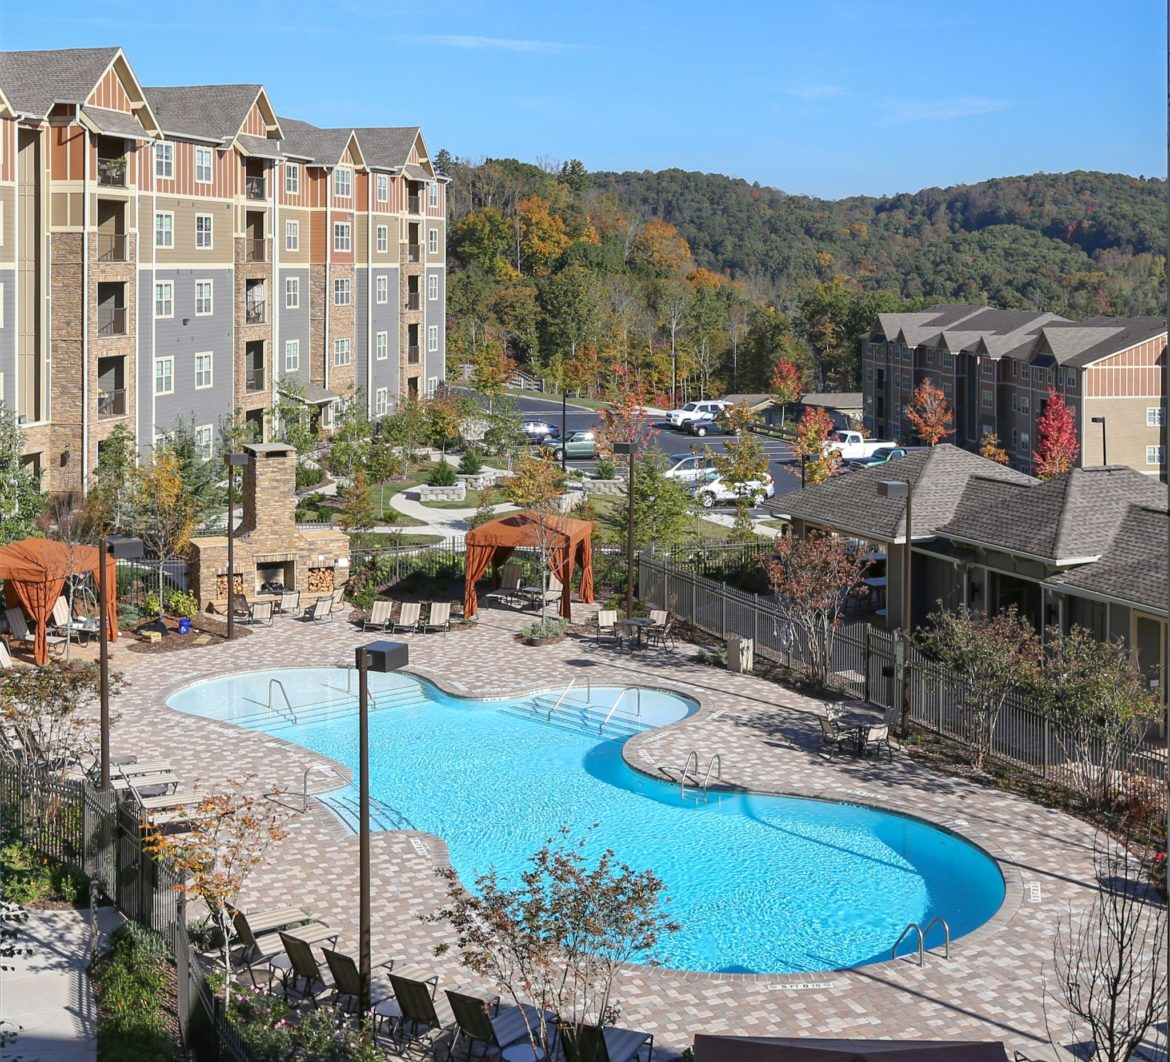 Commercial photography of The Aventine apartments in Asheville, NC. View shooting down on the pool looking out over the blue ridge mountains.